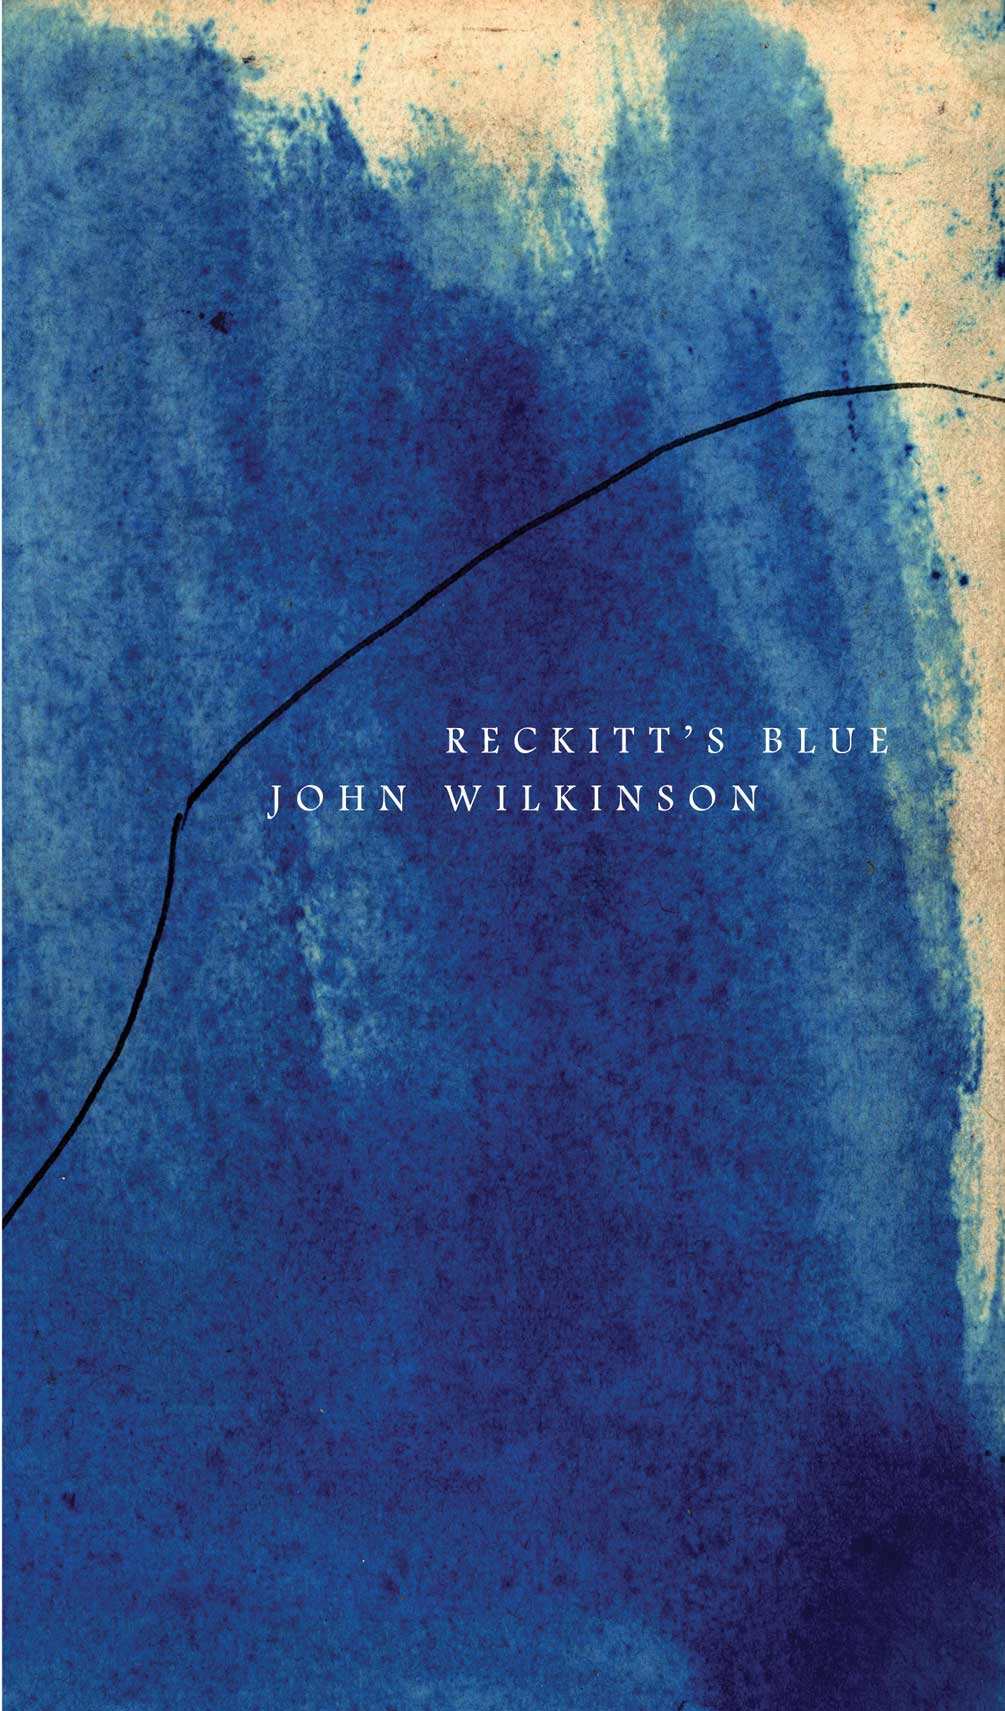 Reckitt's Blue by John Wilkinson | Seagull Books